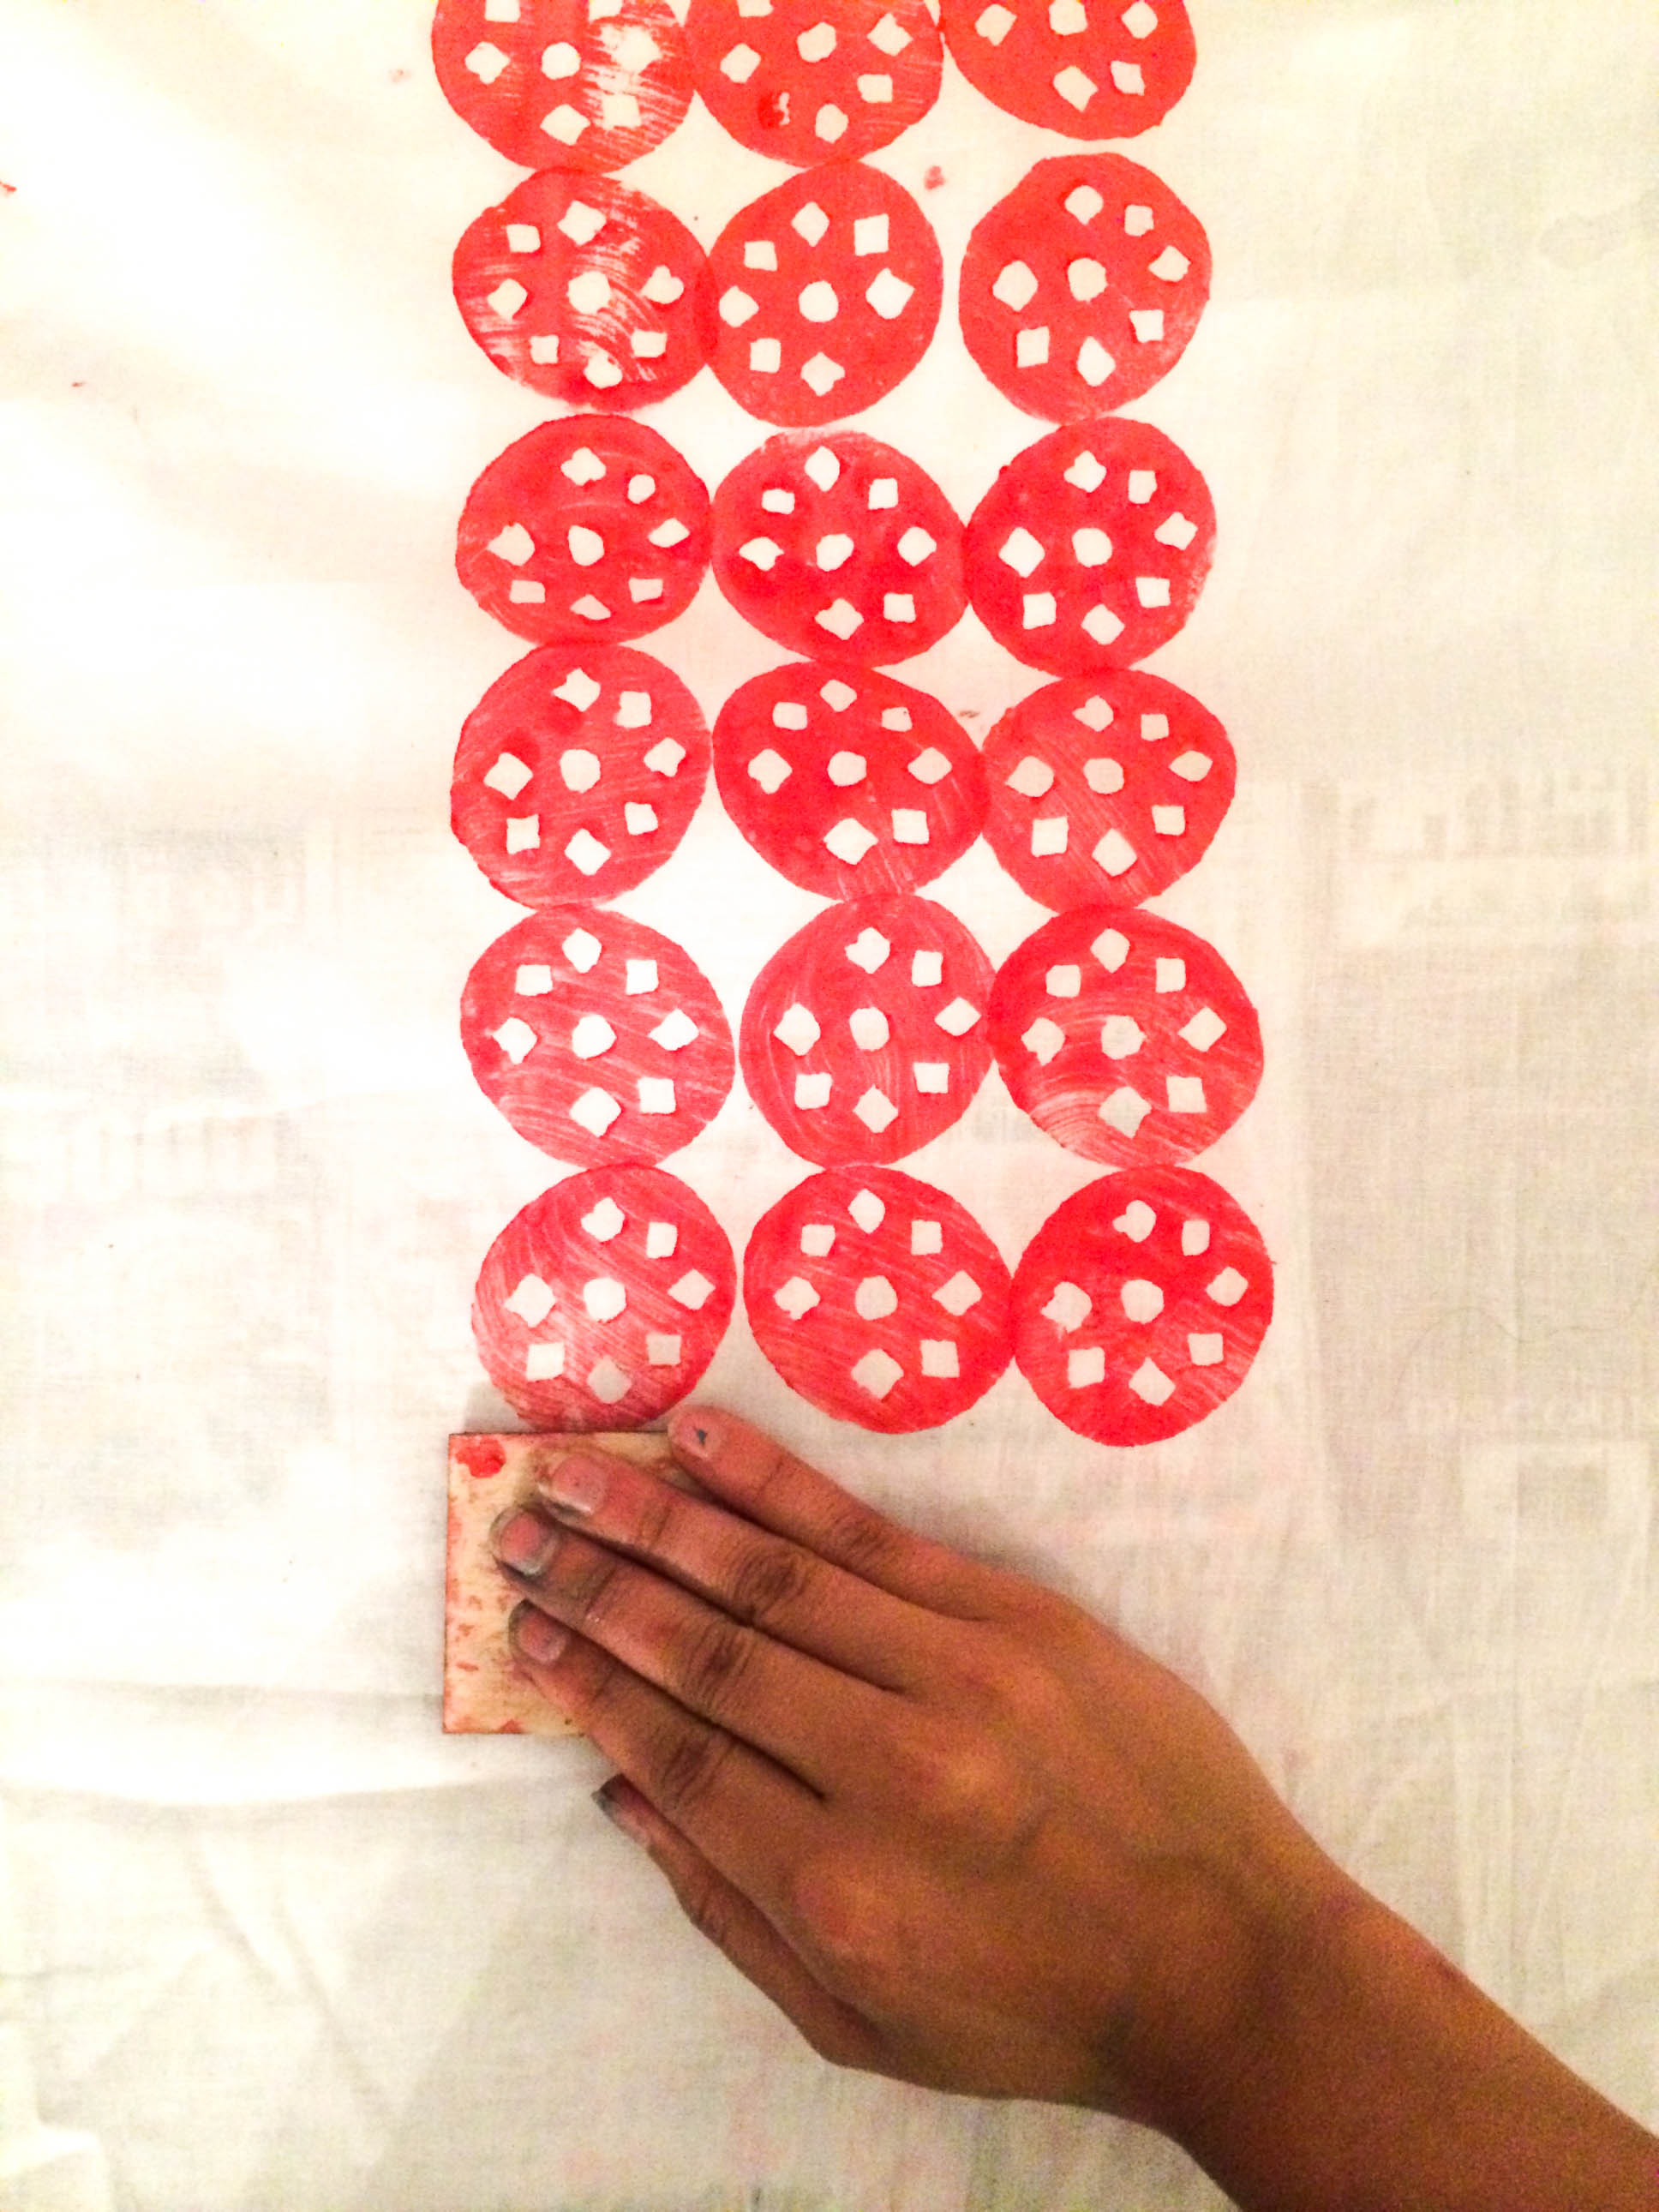 Experimenting  patterns in a Block printing technique on fabrics.